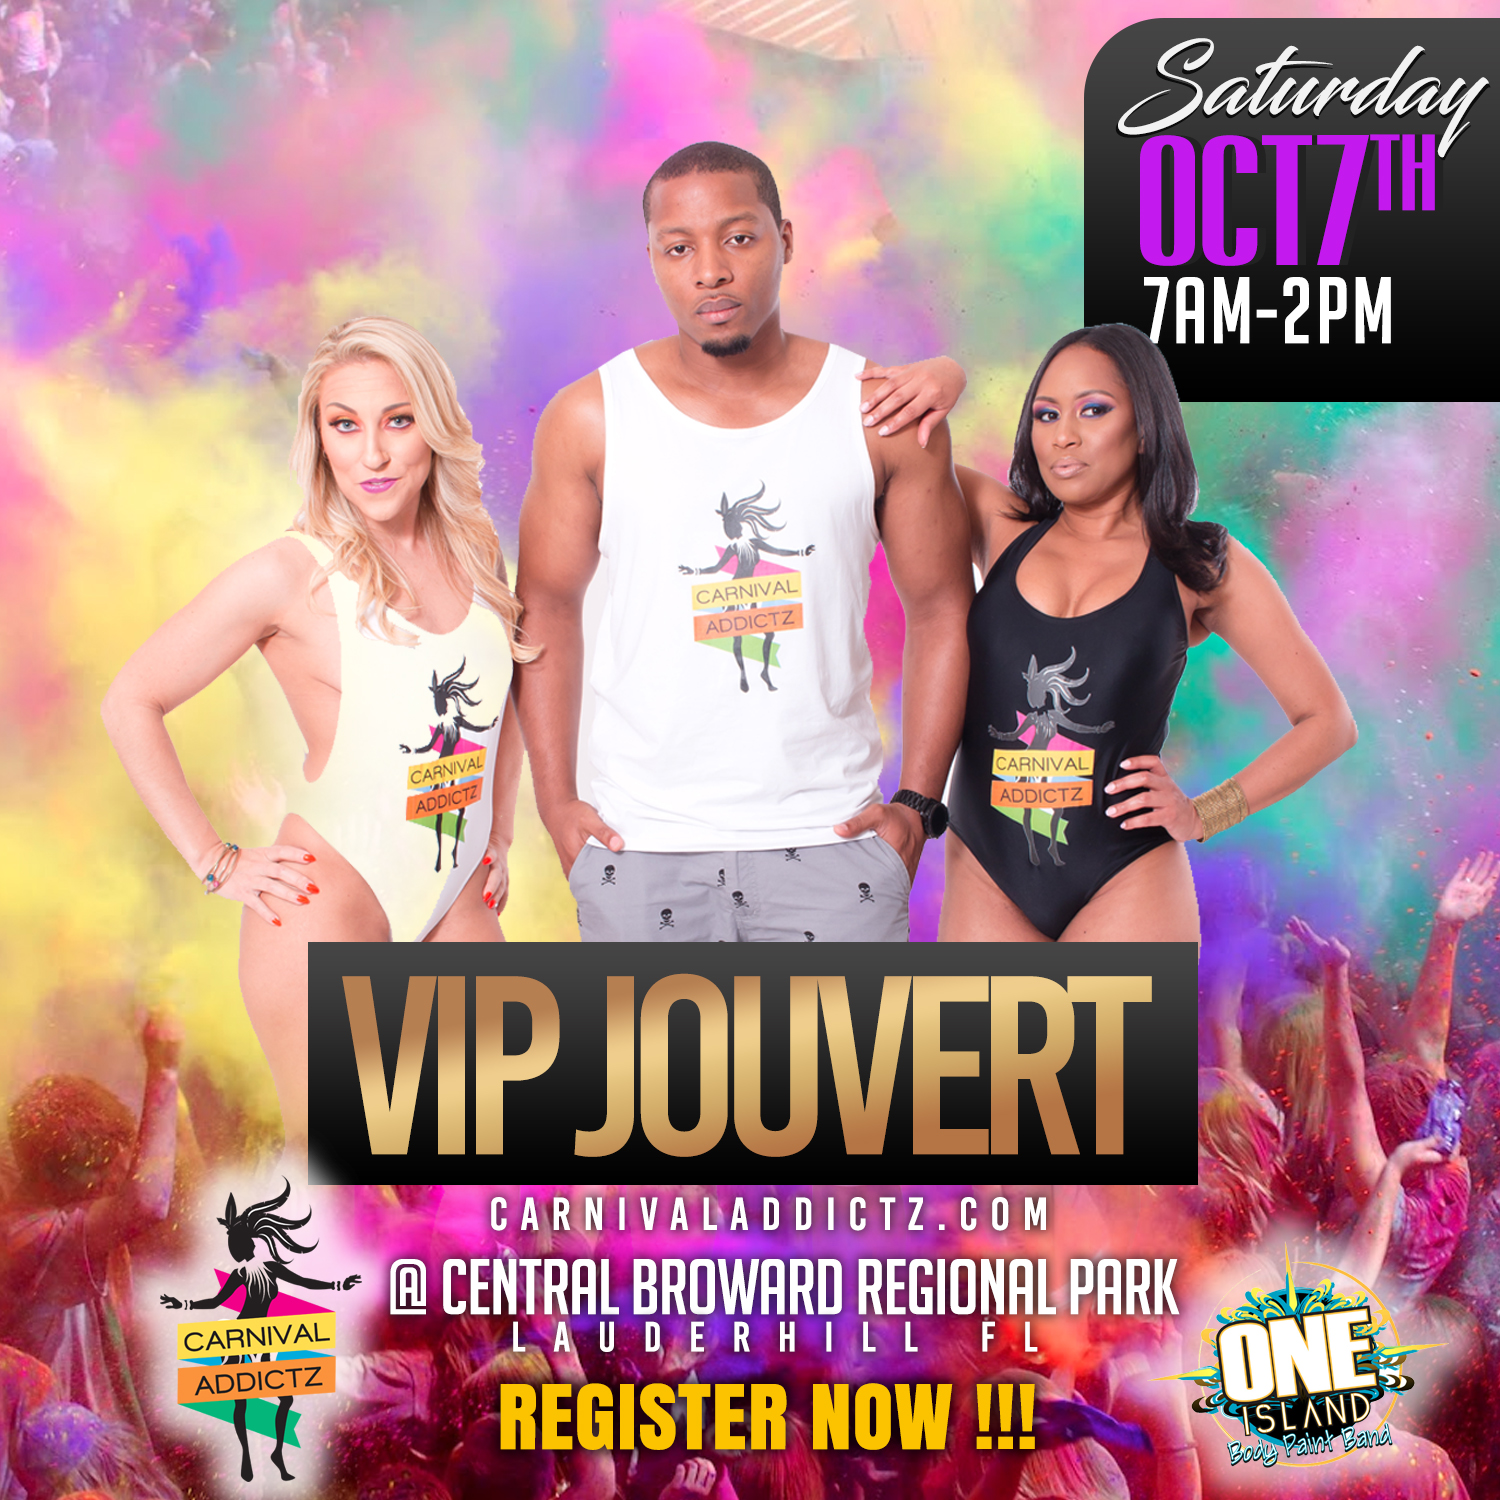 Carnival Addictz - It's J'ouvert time again!We're happy to have you as a part of the Carnival Addictz VIP section. As we prepare for Miami J'ouvert 2017, please note the following information:Distribution:for Carnival Addictz J'ouvert 2017 takes place at:Miami Beach Resort and Spa Location:4833 Collins Avenue, Miami Beach, FL 33140, USAIn the Regency Ballroom & Conference RoomDates: Thursday October 5th & Friday October 6th 2017Distribution:times are as follows:12.00PM - 2.00PM & 6:00PM – 12:00AMWhat to bring:Your printed receiptForm of IDCollecting for someone else?What to bring:Printed receiptLetter of authorizationCopy of ID of the person whose package is being collected (This person's name MUST be on the receipt)ID of the person who is collecting the packageNOTE: For patrons who purchased MULTIPLE packages, ALL PACKAGES MUST BE COLLECTED AT THE SAME TIME.Please be reminded that your PRINTED or electronic receipt MUST be presented at the distribution center.Carnival Addictz thanks you for choosing to join us for J'ouvert.We can't wait to see YOU on the ROAD.